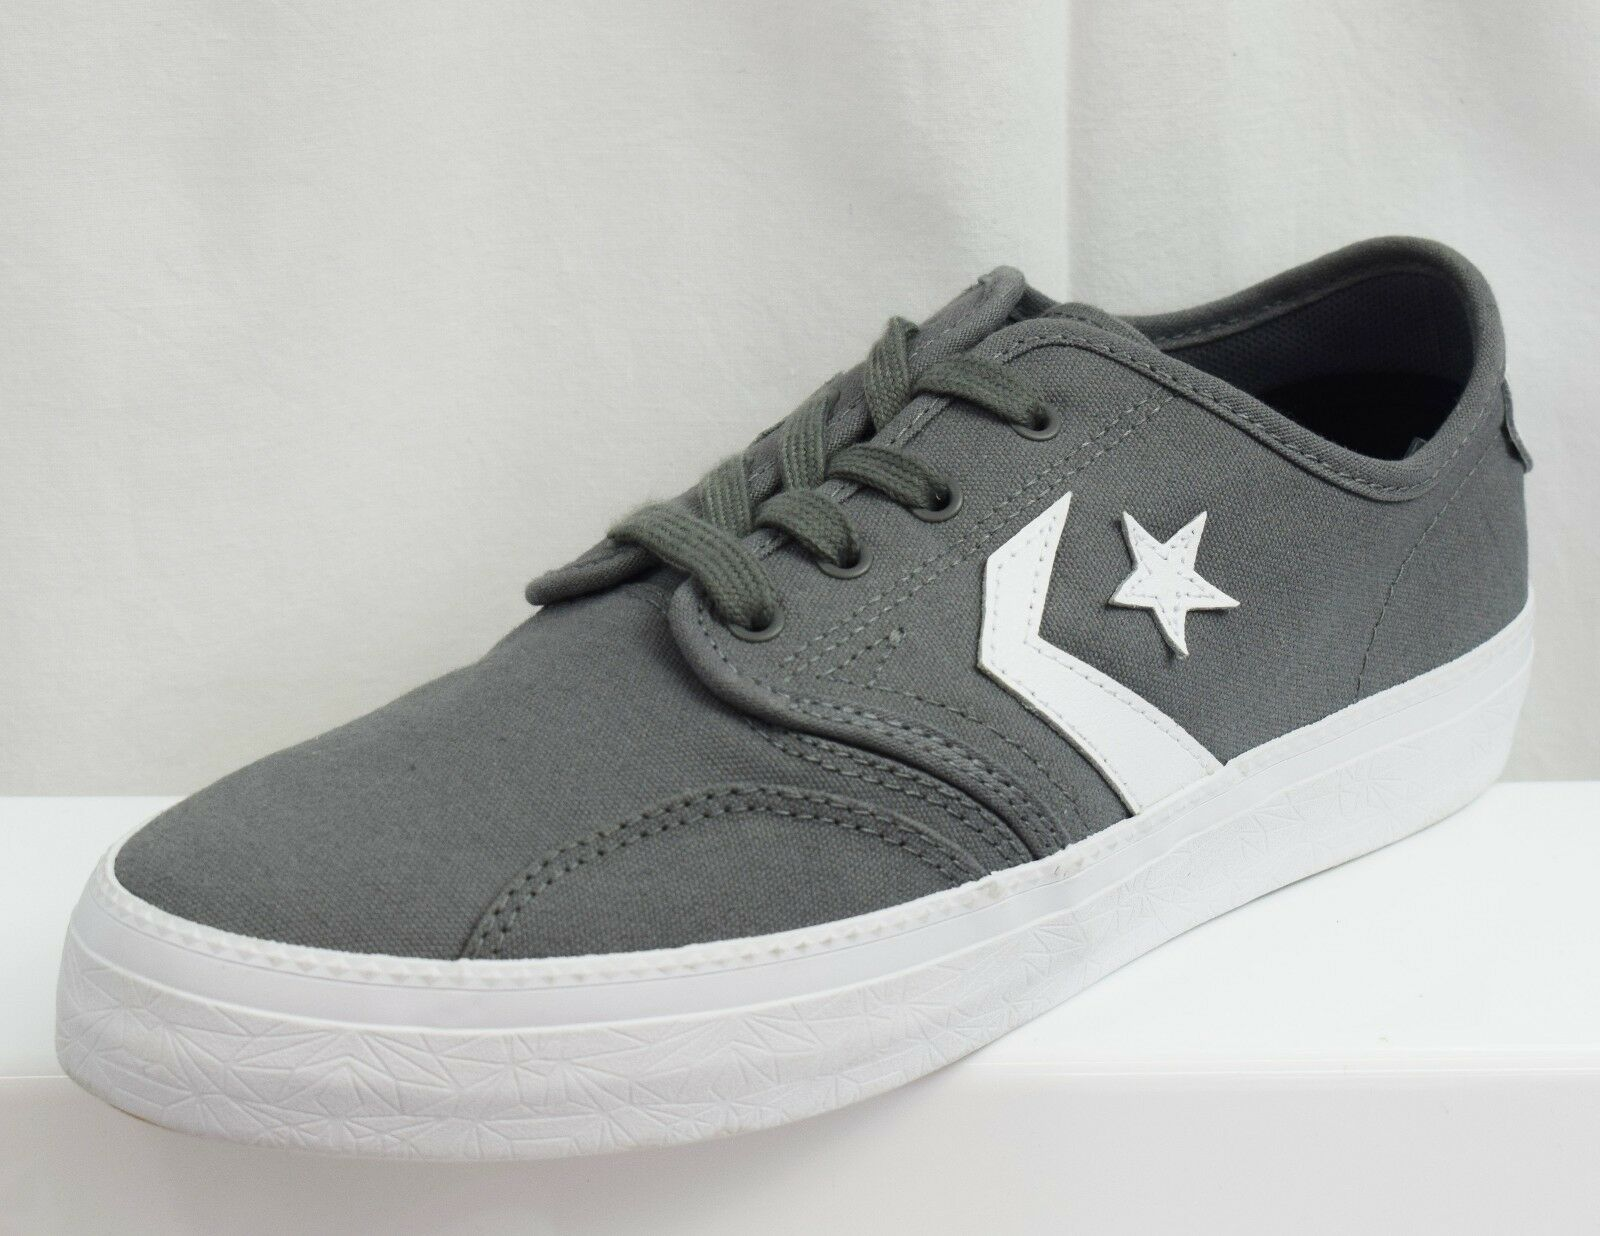 Converse Zakim Femmes Toile Chaussures Neuf Taille UK 5 (CE17)